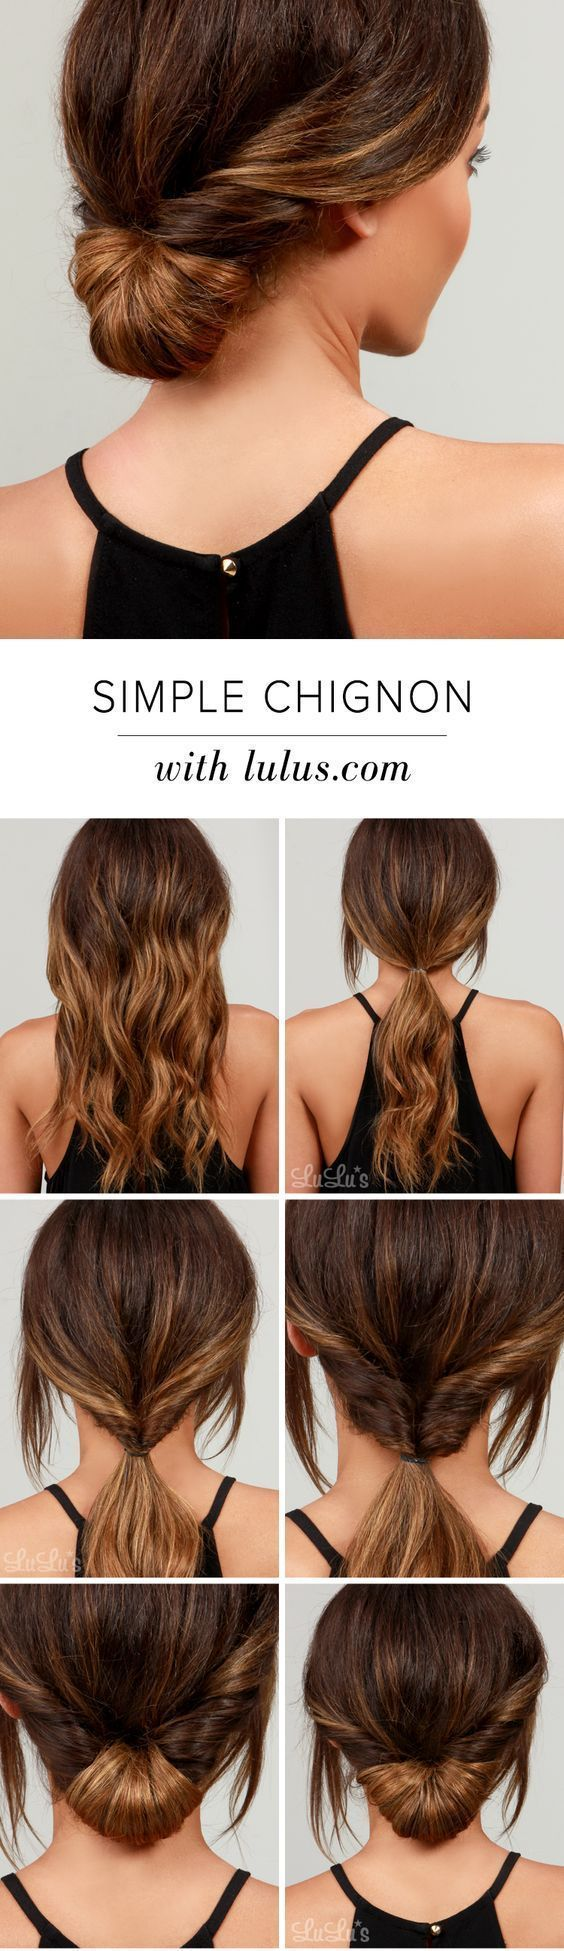 15 Simple but Trendy Hairstyles for Lazy Women - #simple #full #women #styles #trendige -